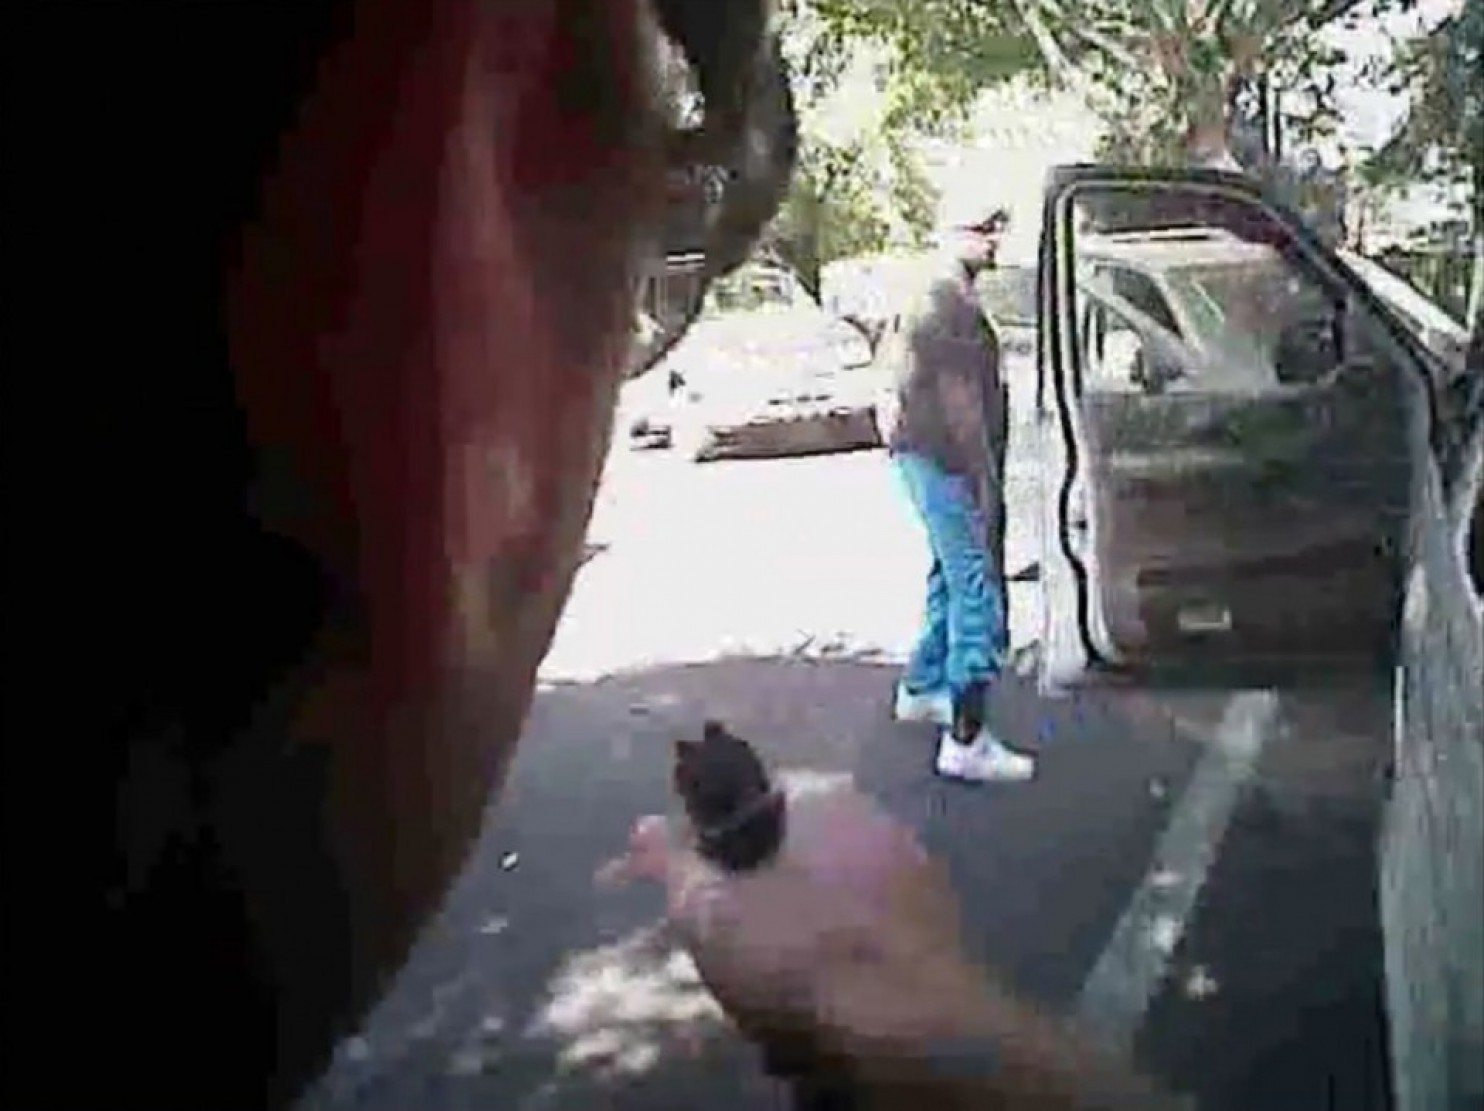 A still image from a video the Charlotte police released showing Keith Scott looking at officers with hands by his sides just before he was shot. (Charlotte-Mecklenburg Police Department via Reuters)